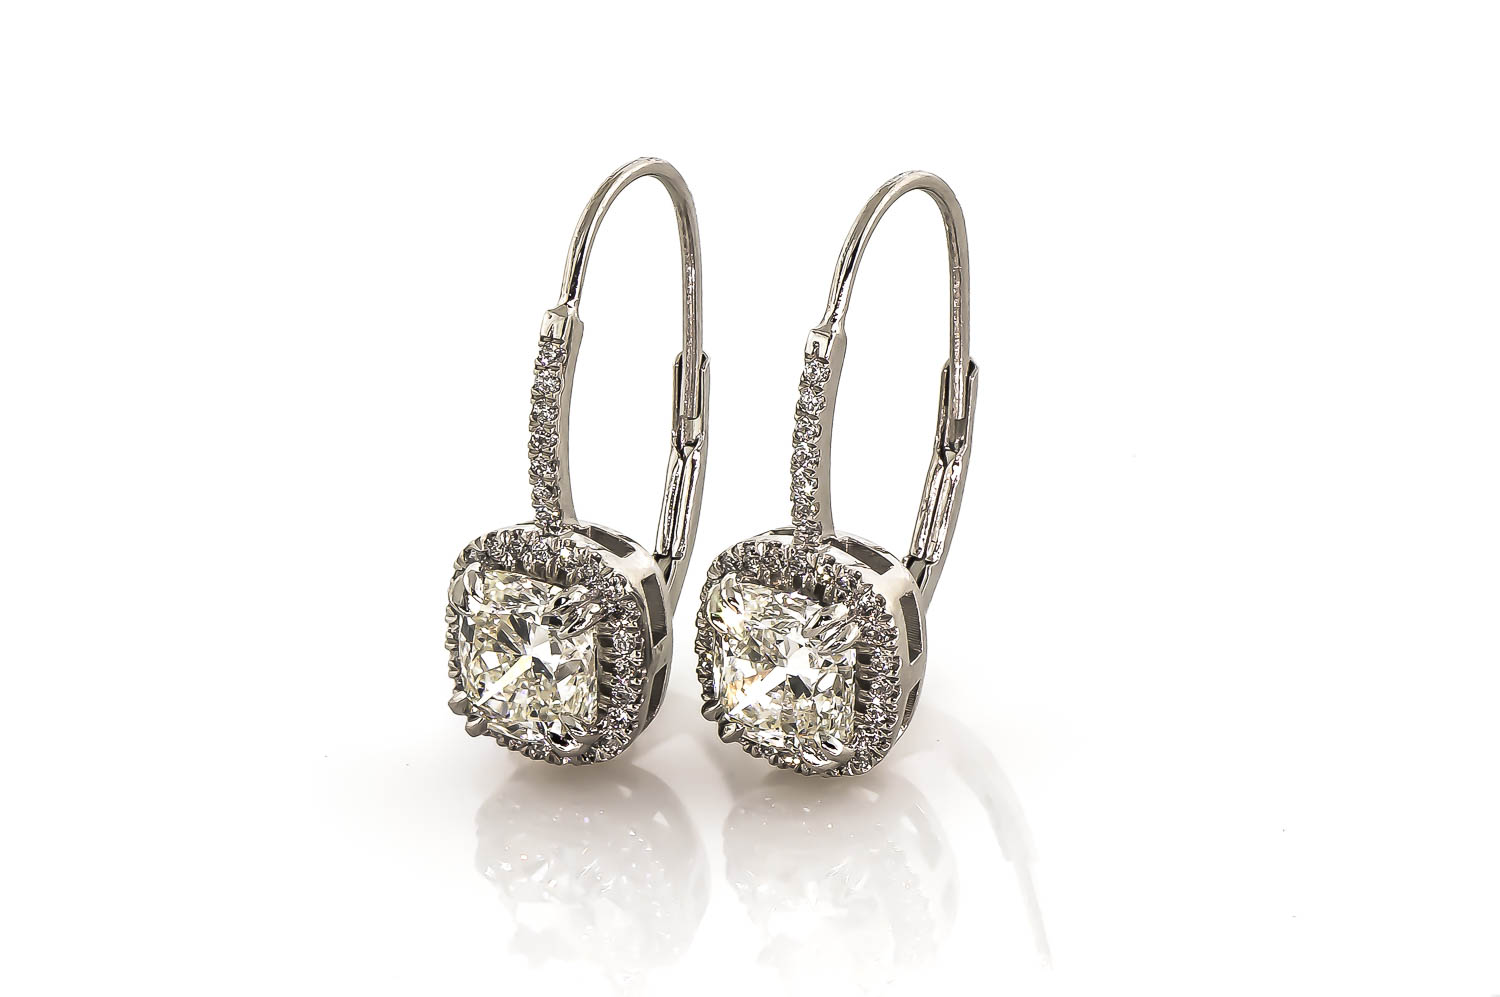 diamond leverback earrings (1 of 1).jpg